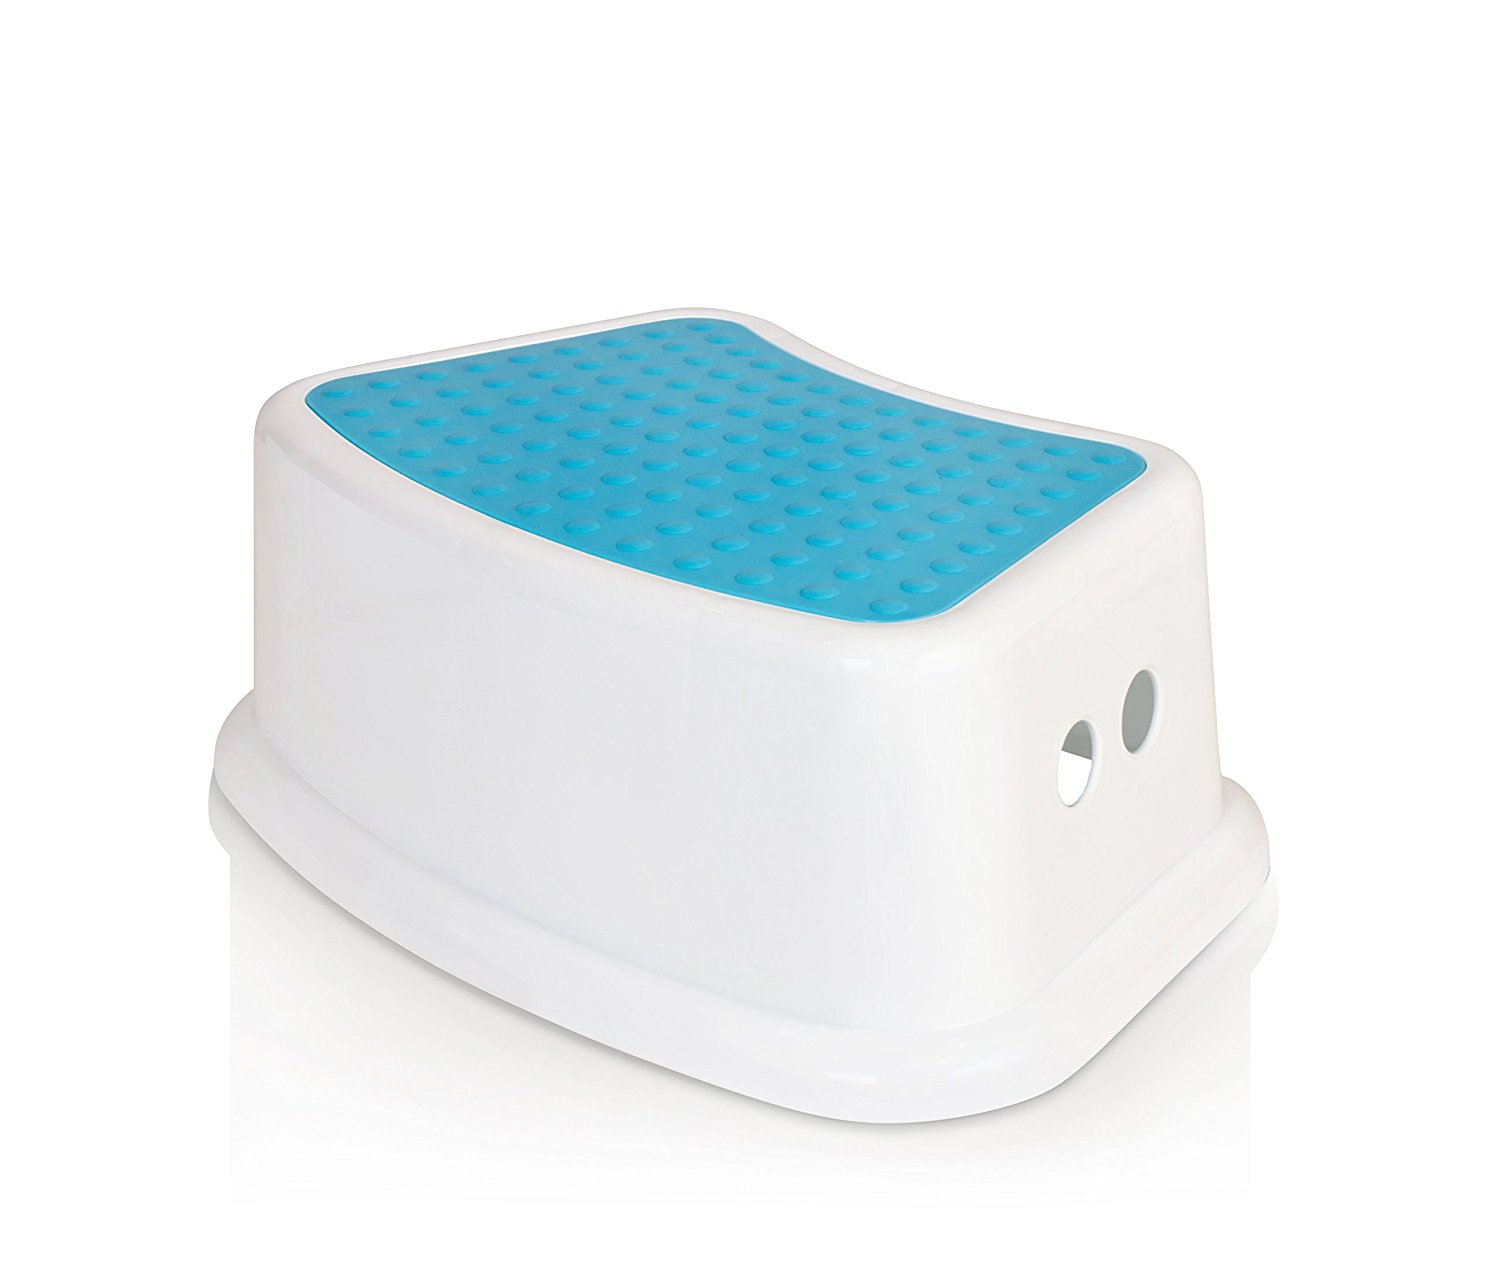 Blue Step Stool Only 7 99 On Lightning Deal Become A